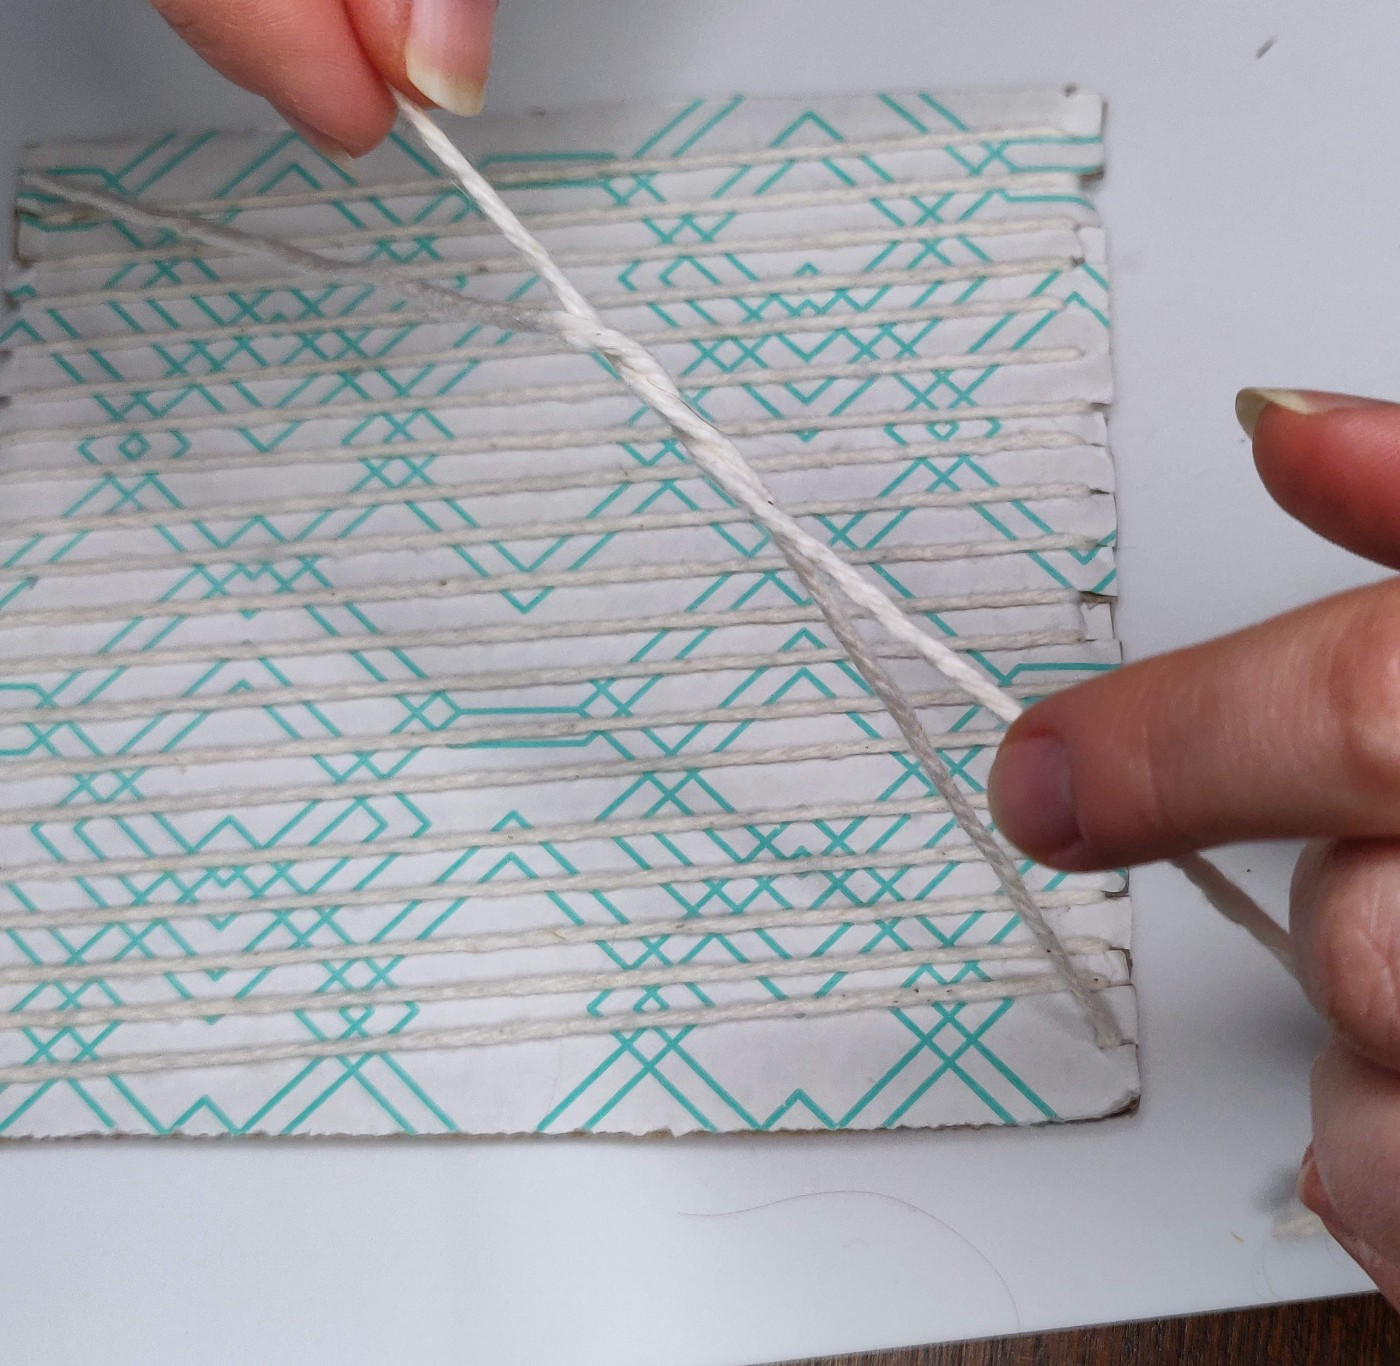 Hands tying a knot at the back of a cardboard loom